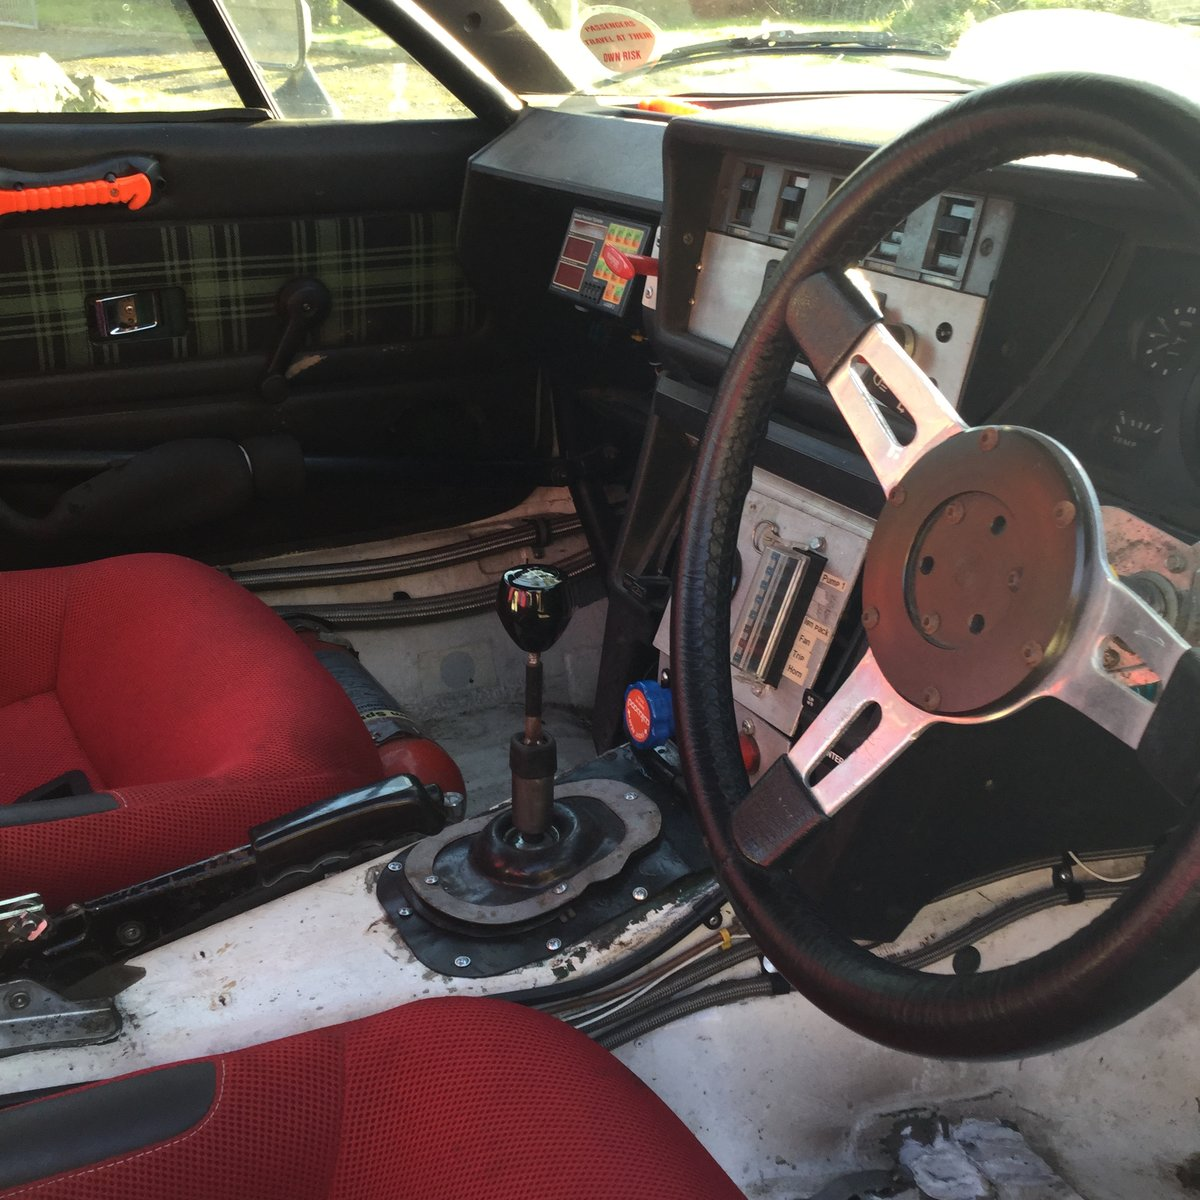 1979 Tr7 v8 rally car For Sale (picture 5 of 6)